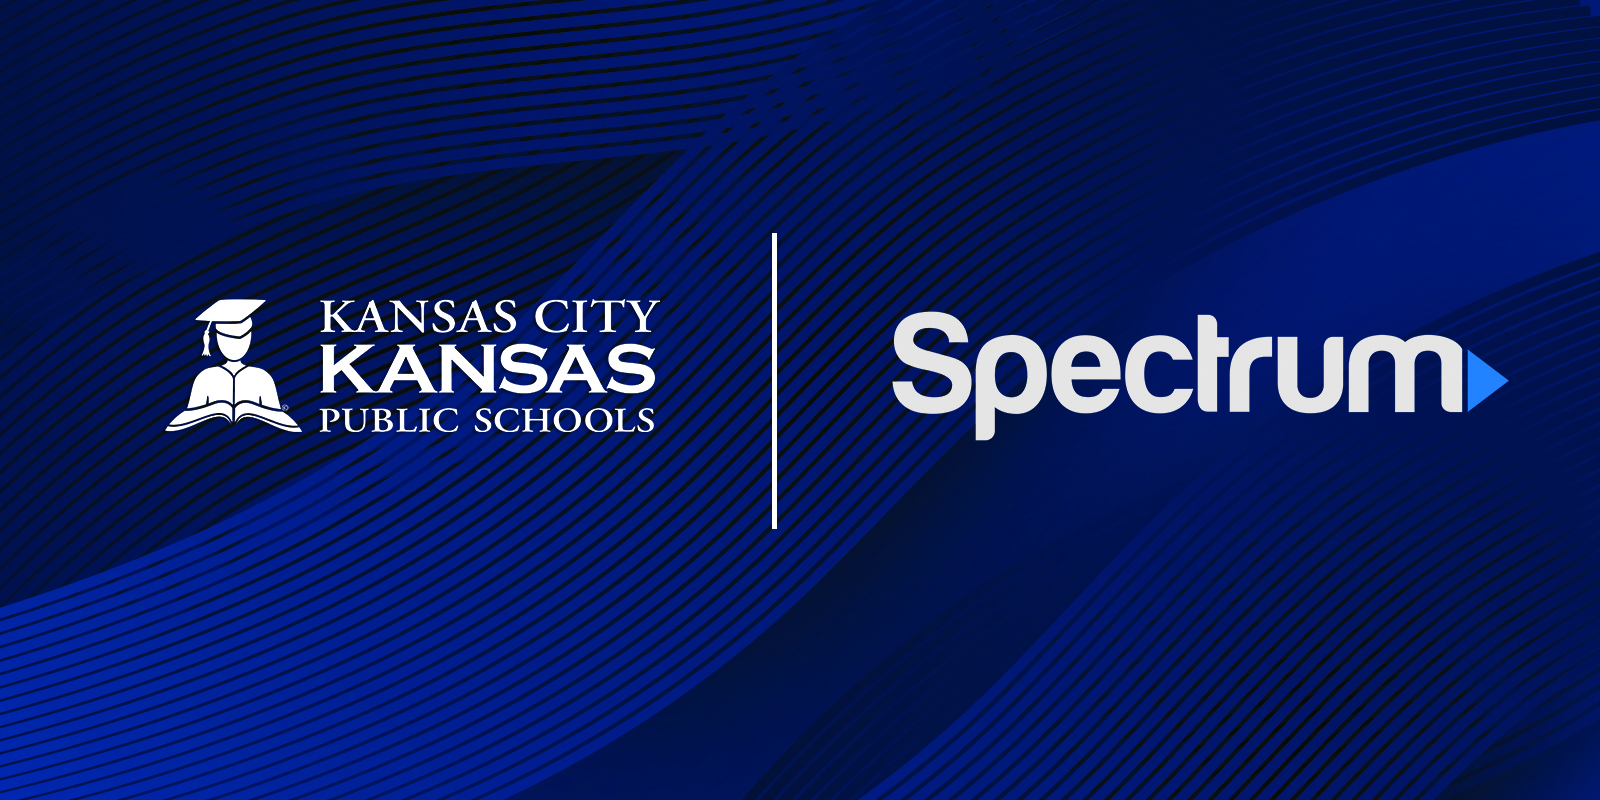 KCKPS and Spectrum logos